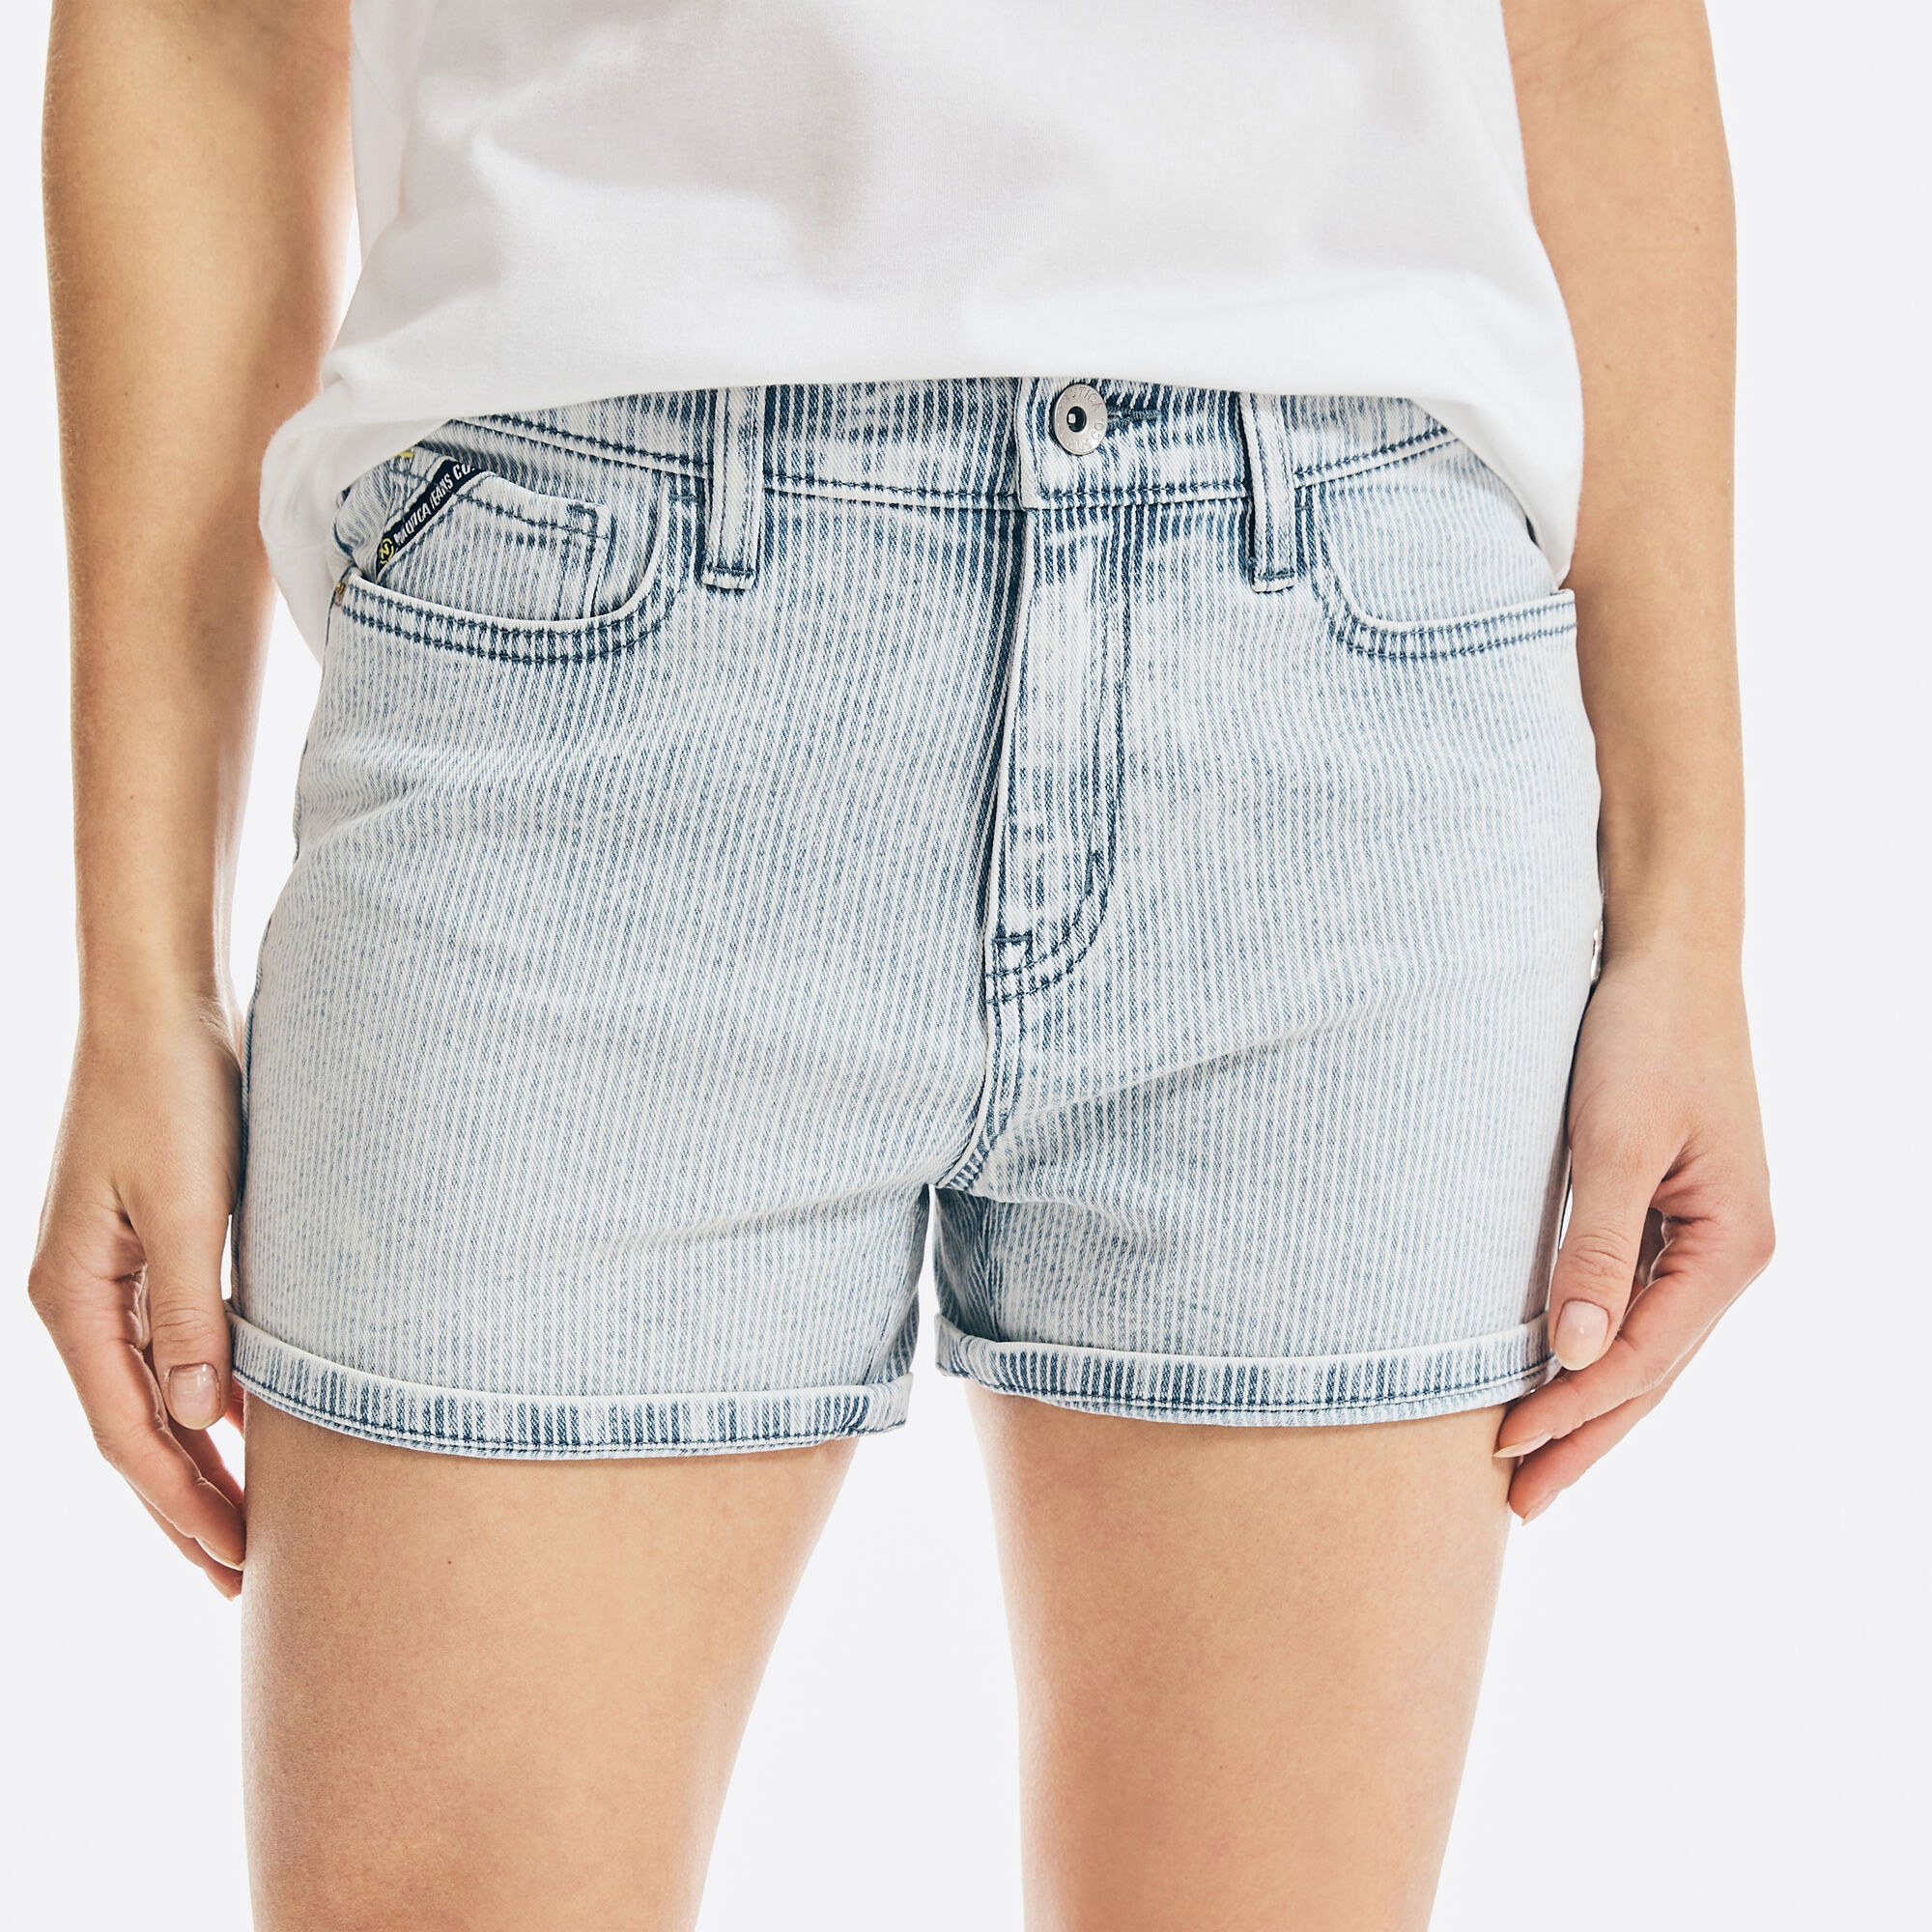 model wearing a light wash pair of shorts